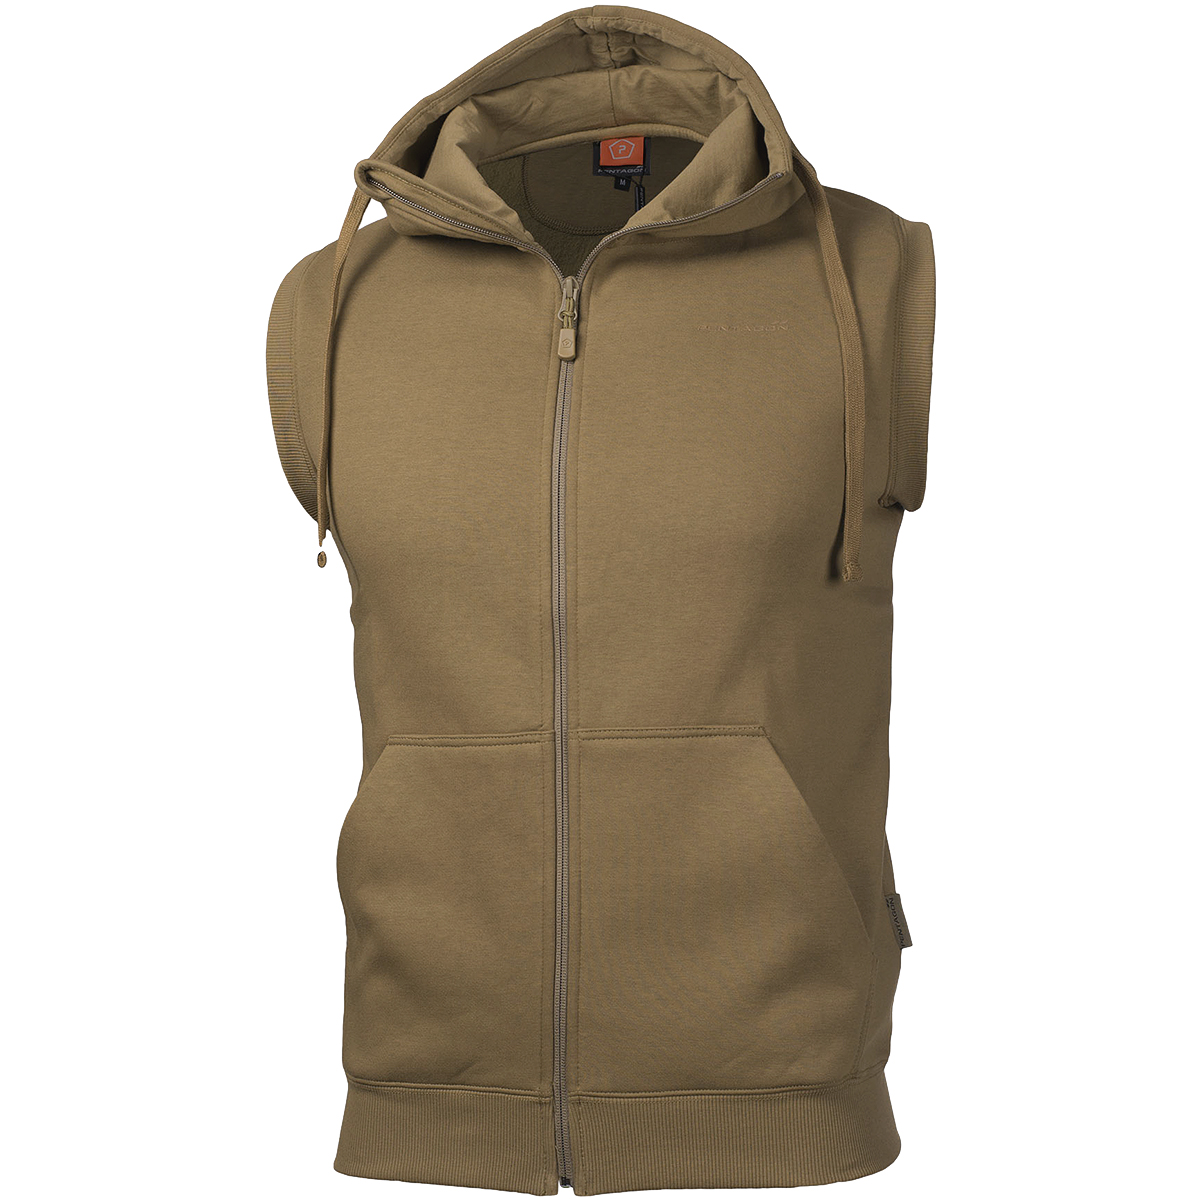 We have a variety of Vest Sweatshirts & Hoodies and hoodies to fit your fashion needs. Tell the world how you feel or rock a funny saying with your outerwear. Vest Sweatshirts & Hoodies and hoodies are great gifts for any occasion.